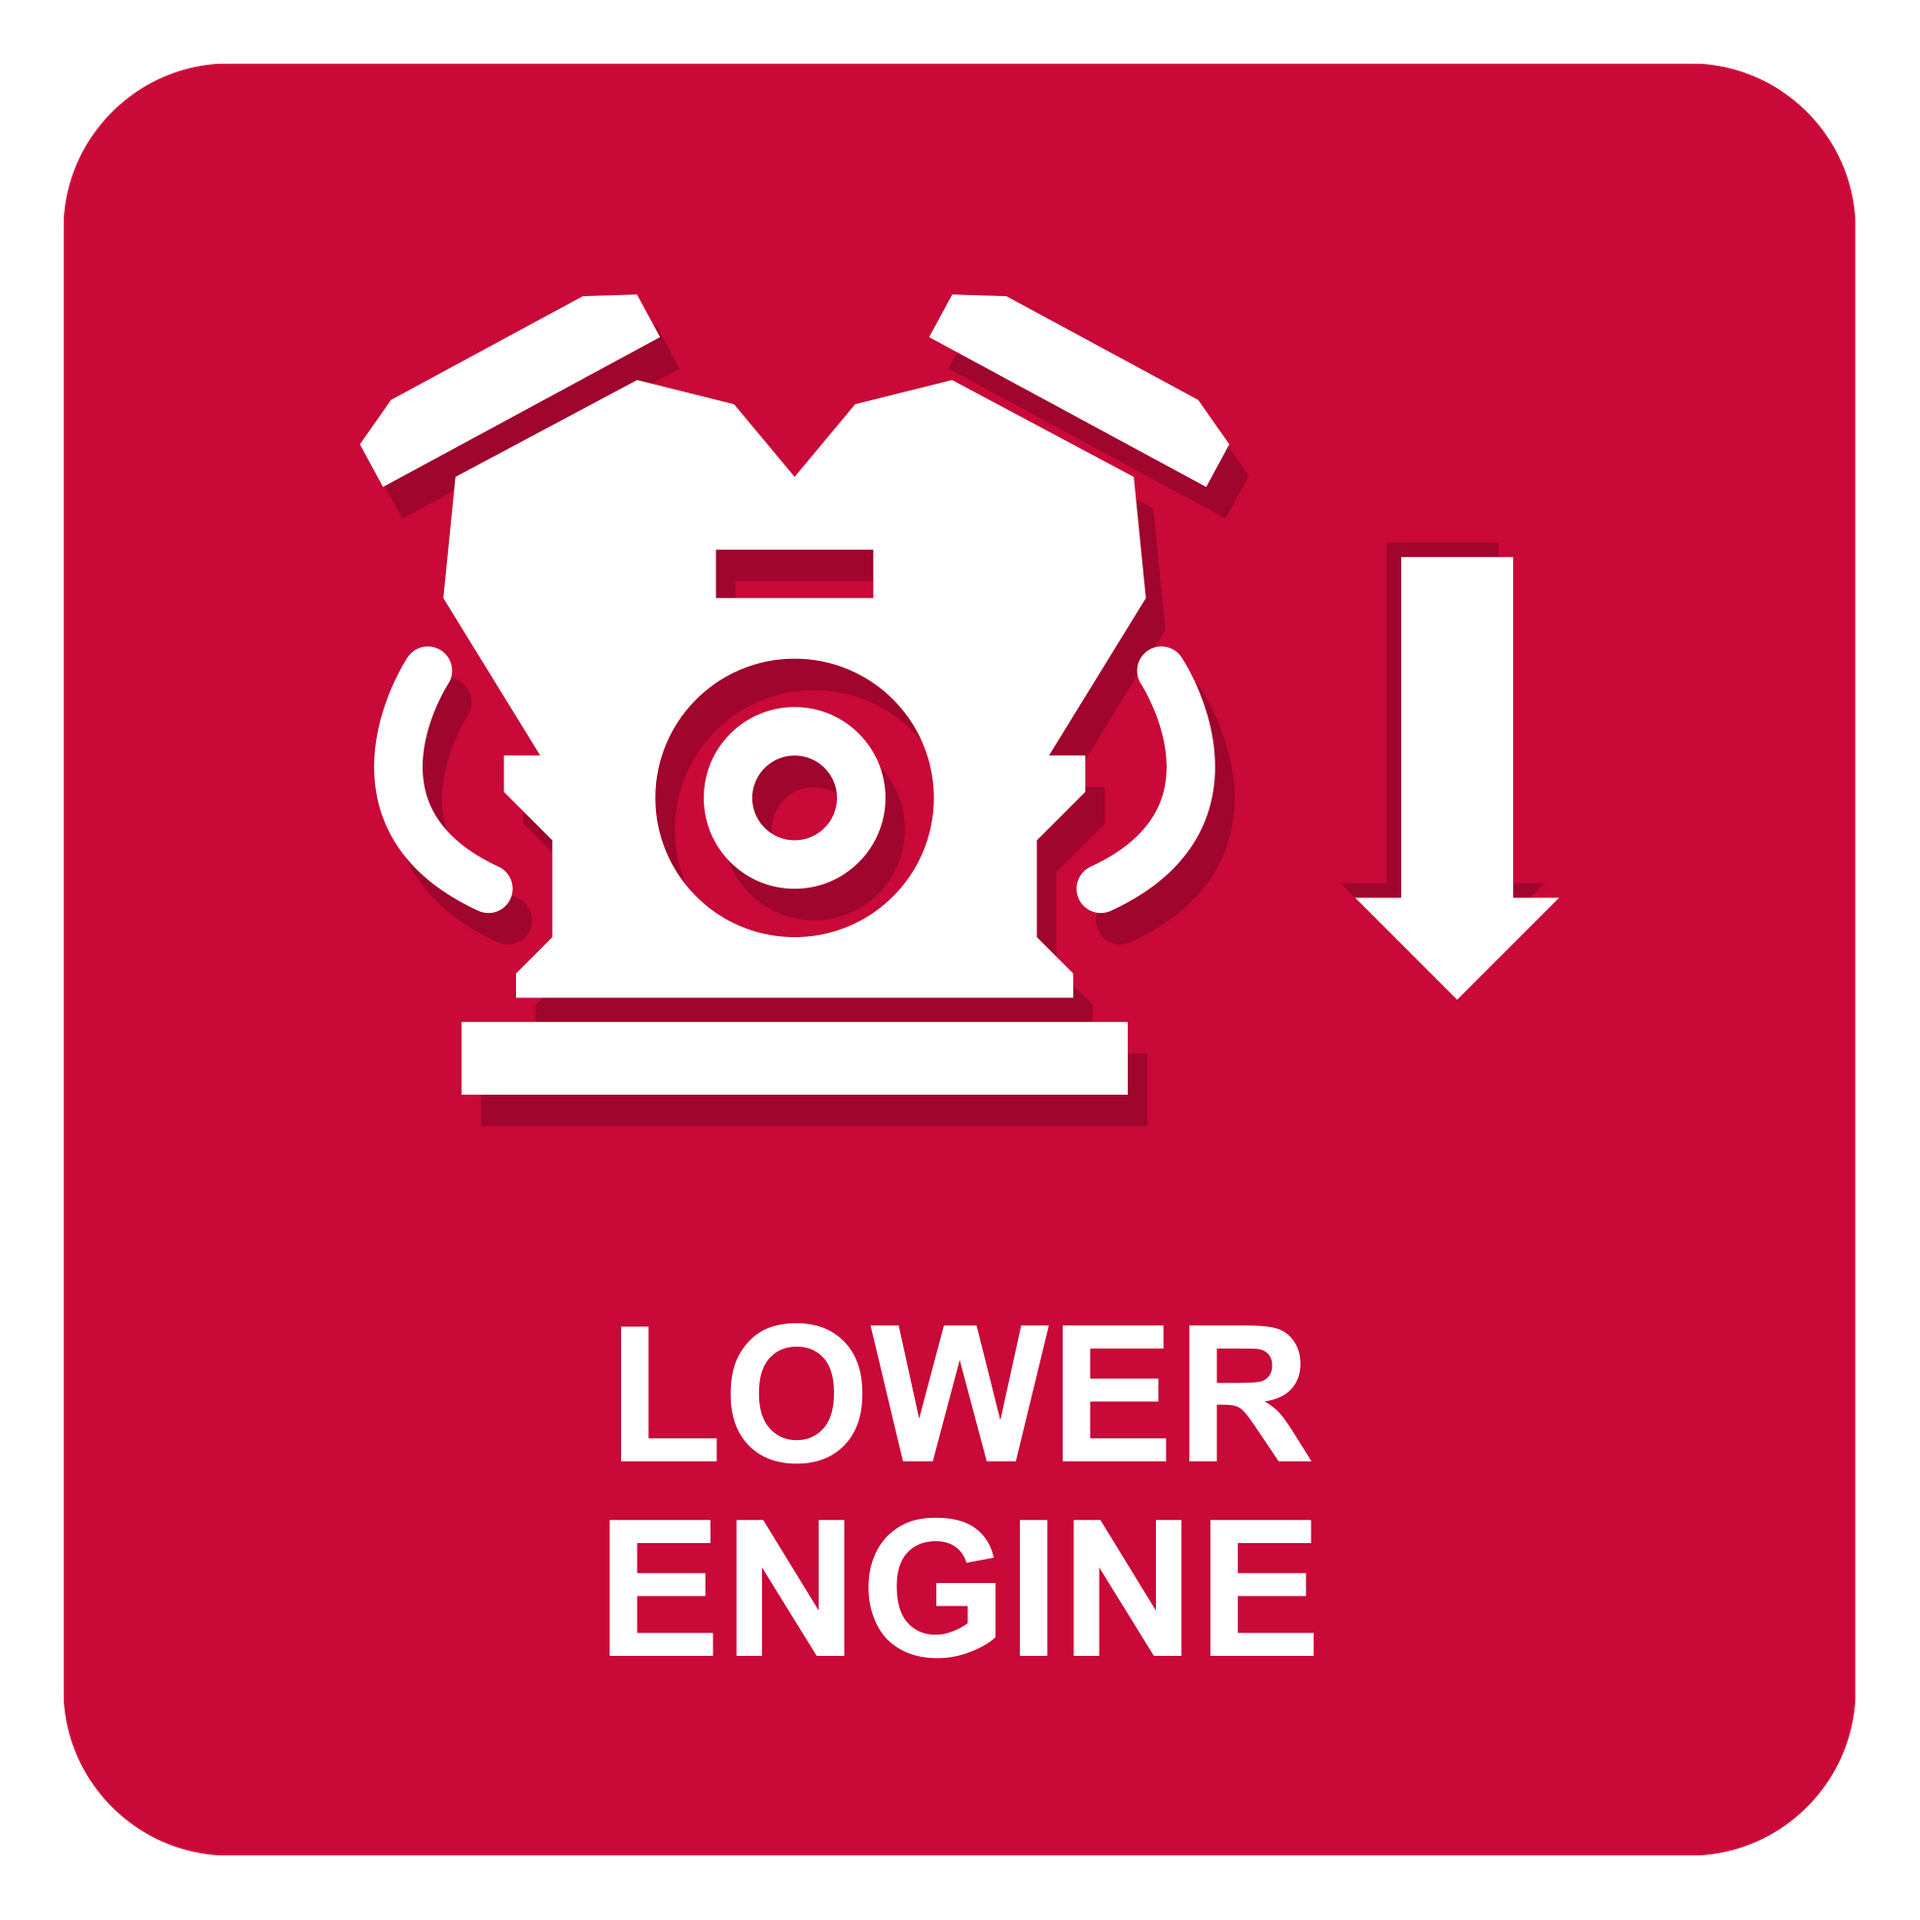 LOWER ENGINE